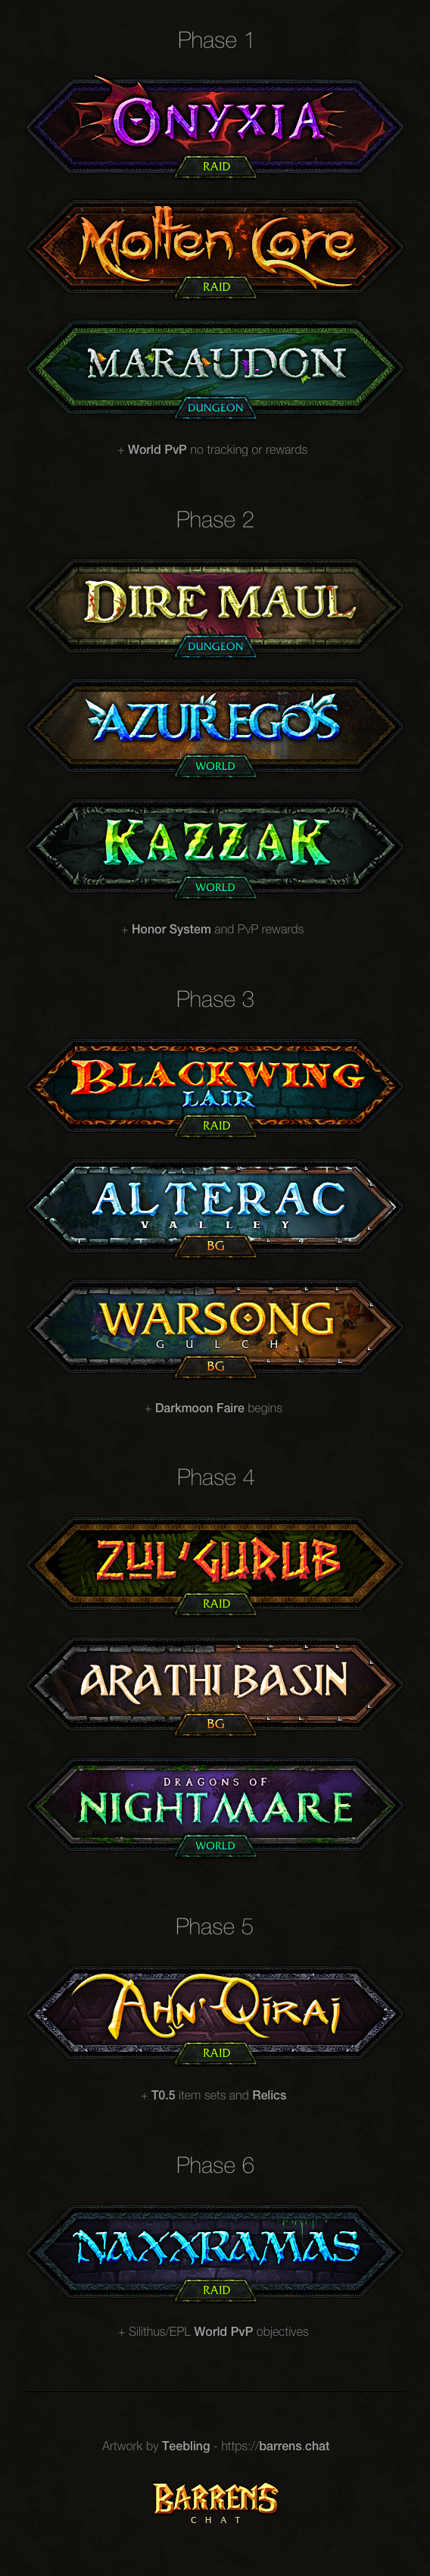 https://barrens.chat/images/tech/wow_classic_logos.png